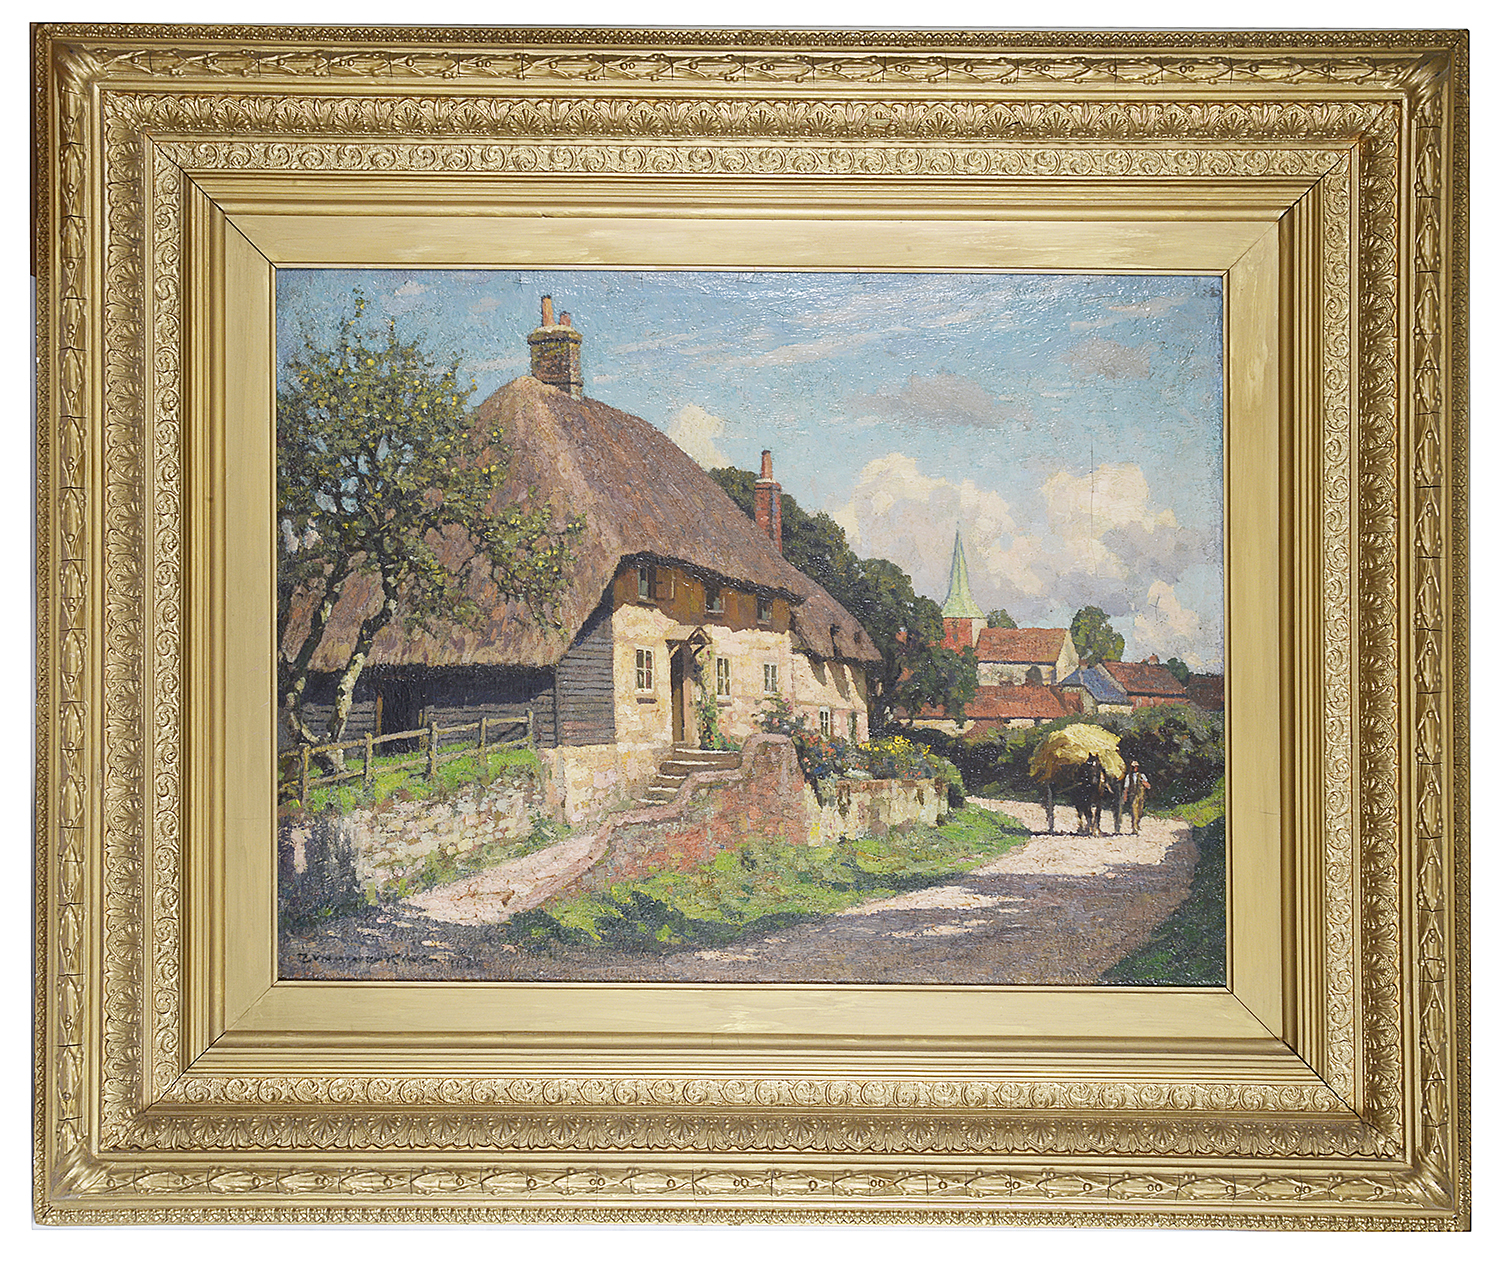 Lot 44 - William G King (Brit., 1859-1940) 'Harting, Petersfield' oil on canvas